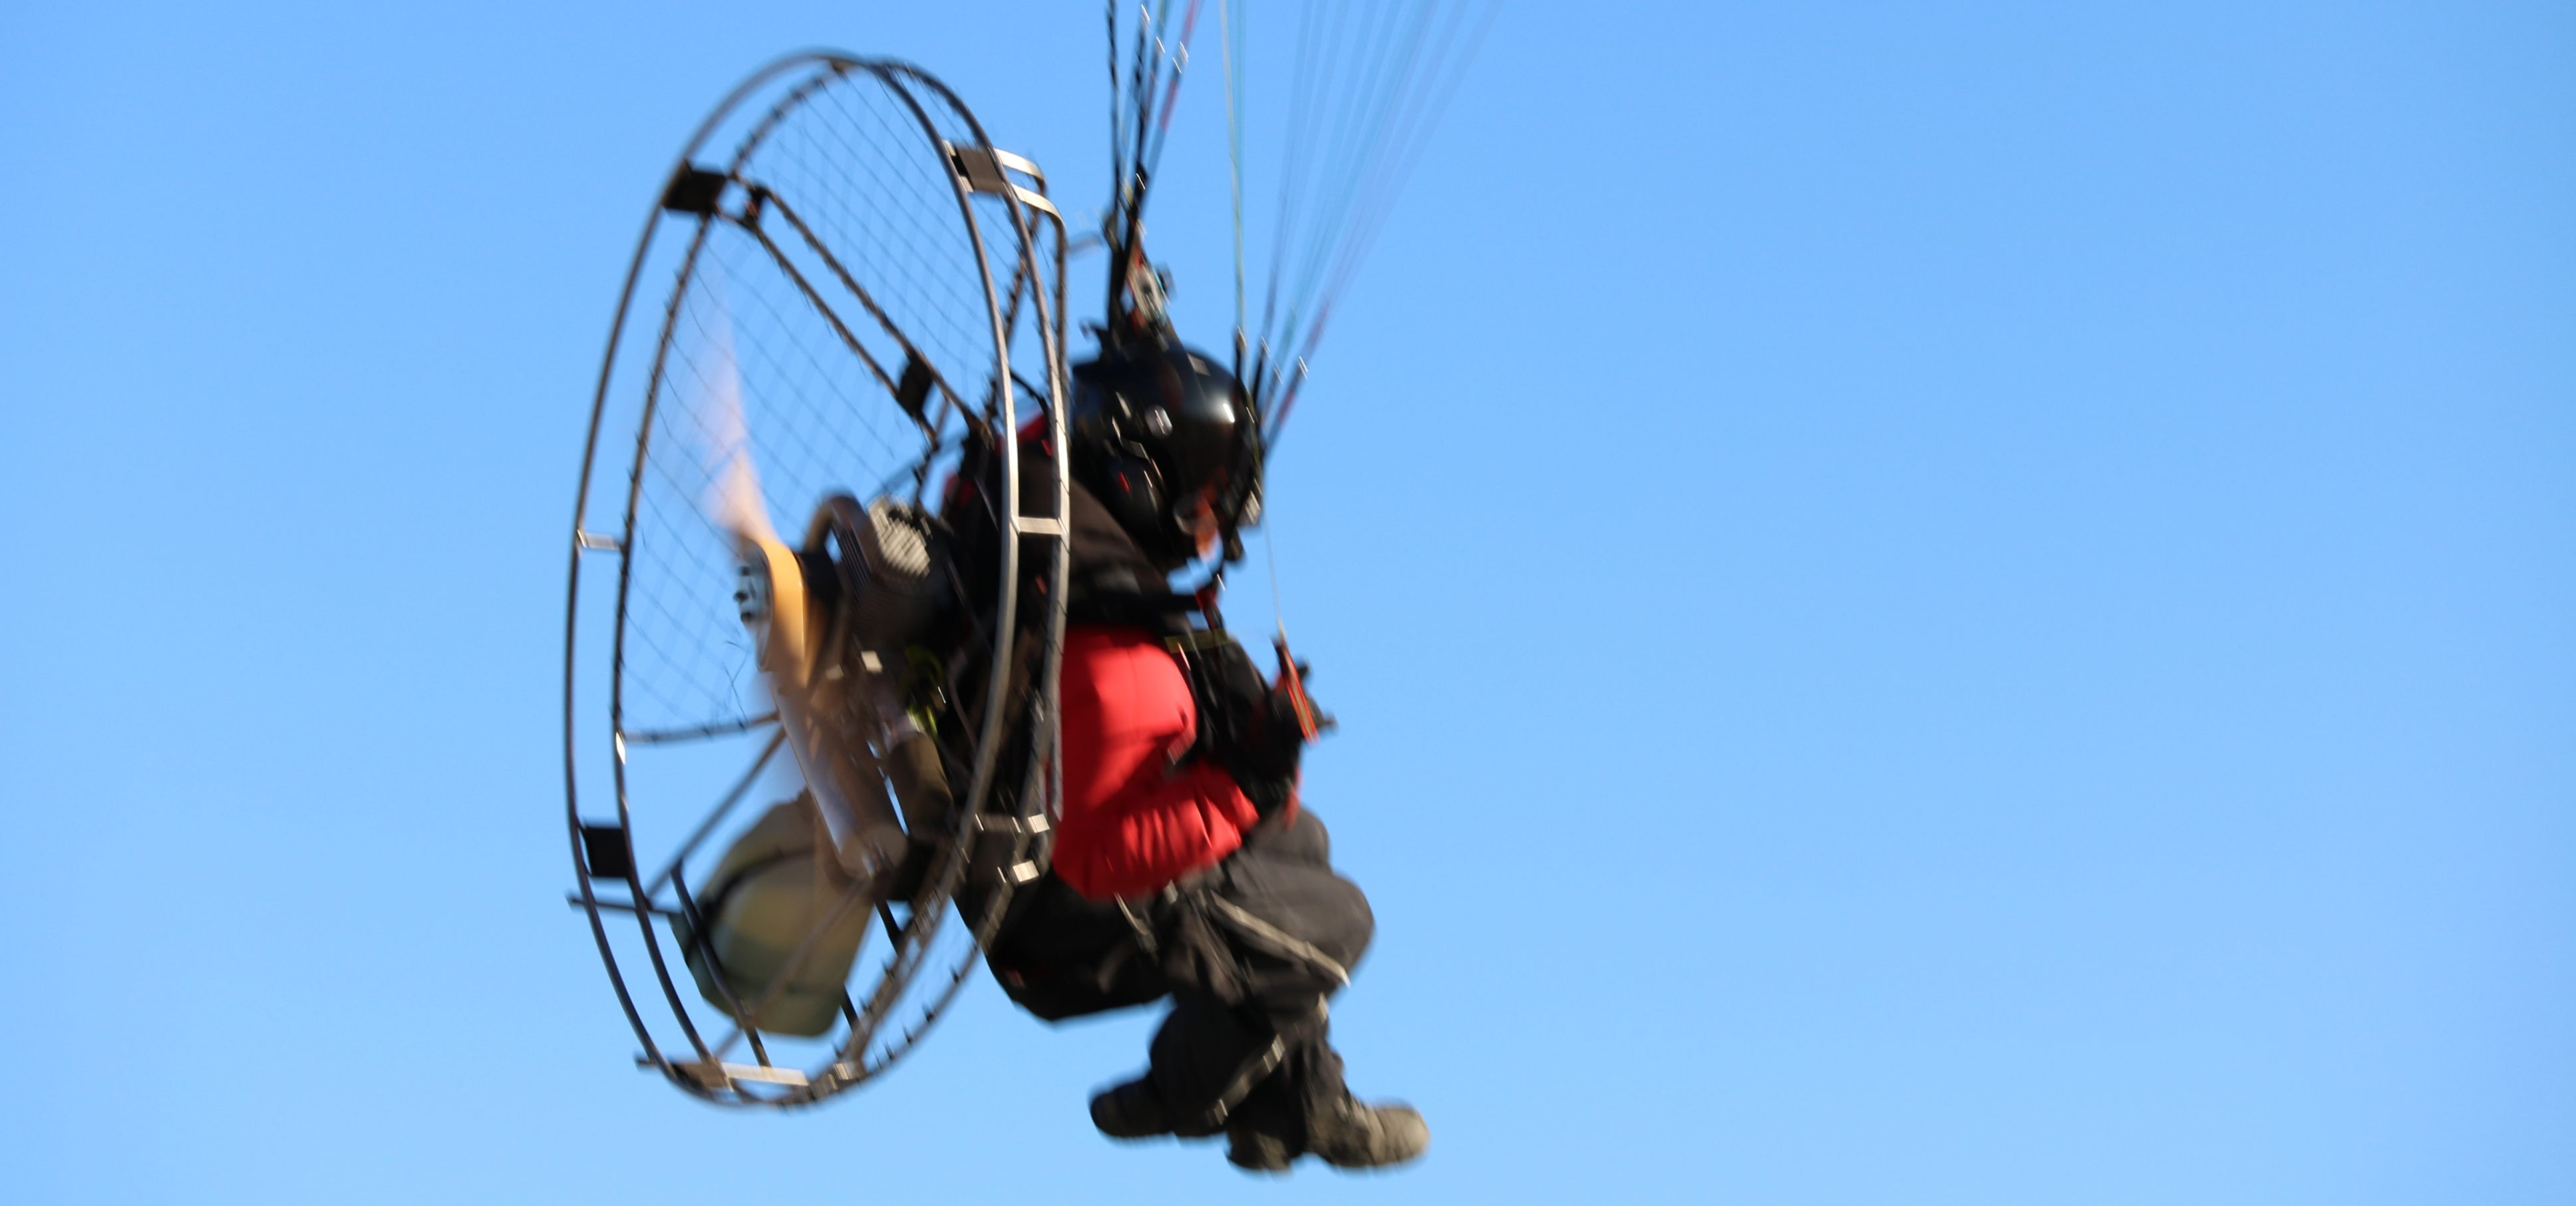 F A Q - Paramotors and Paragliders for sale in Canada, Fresh